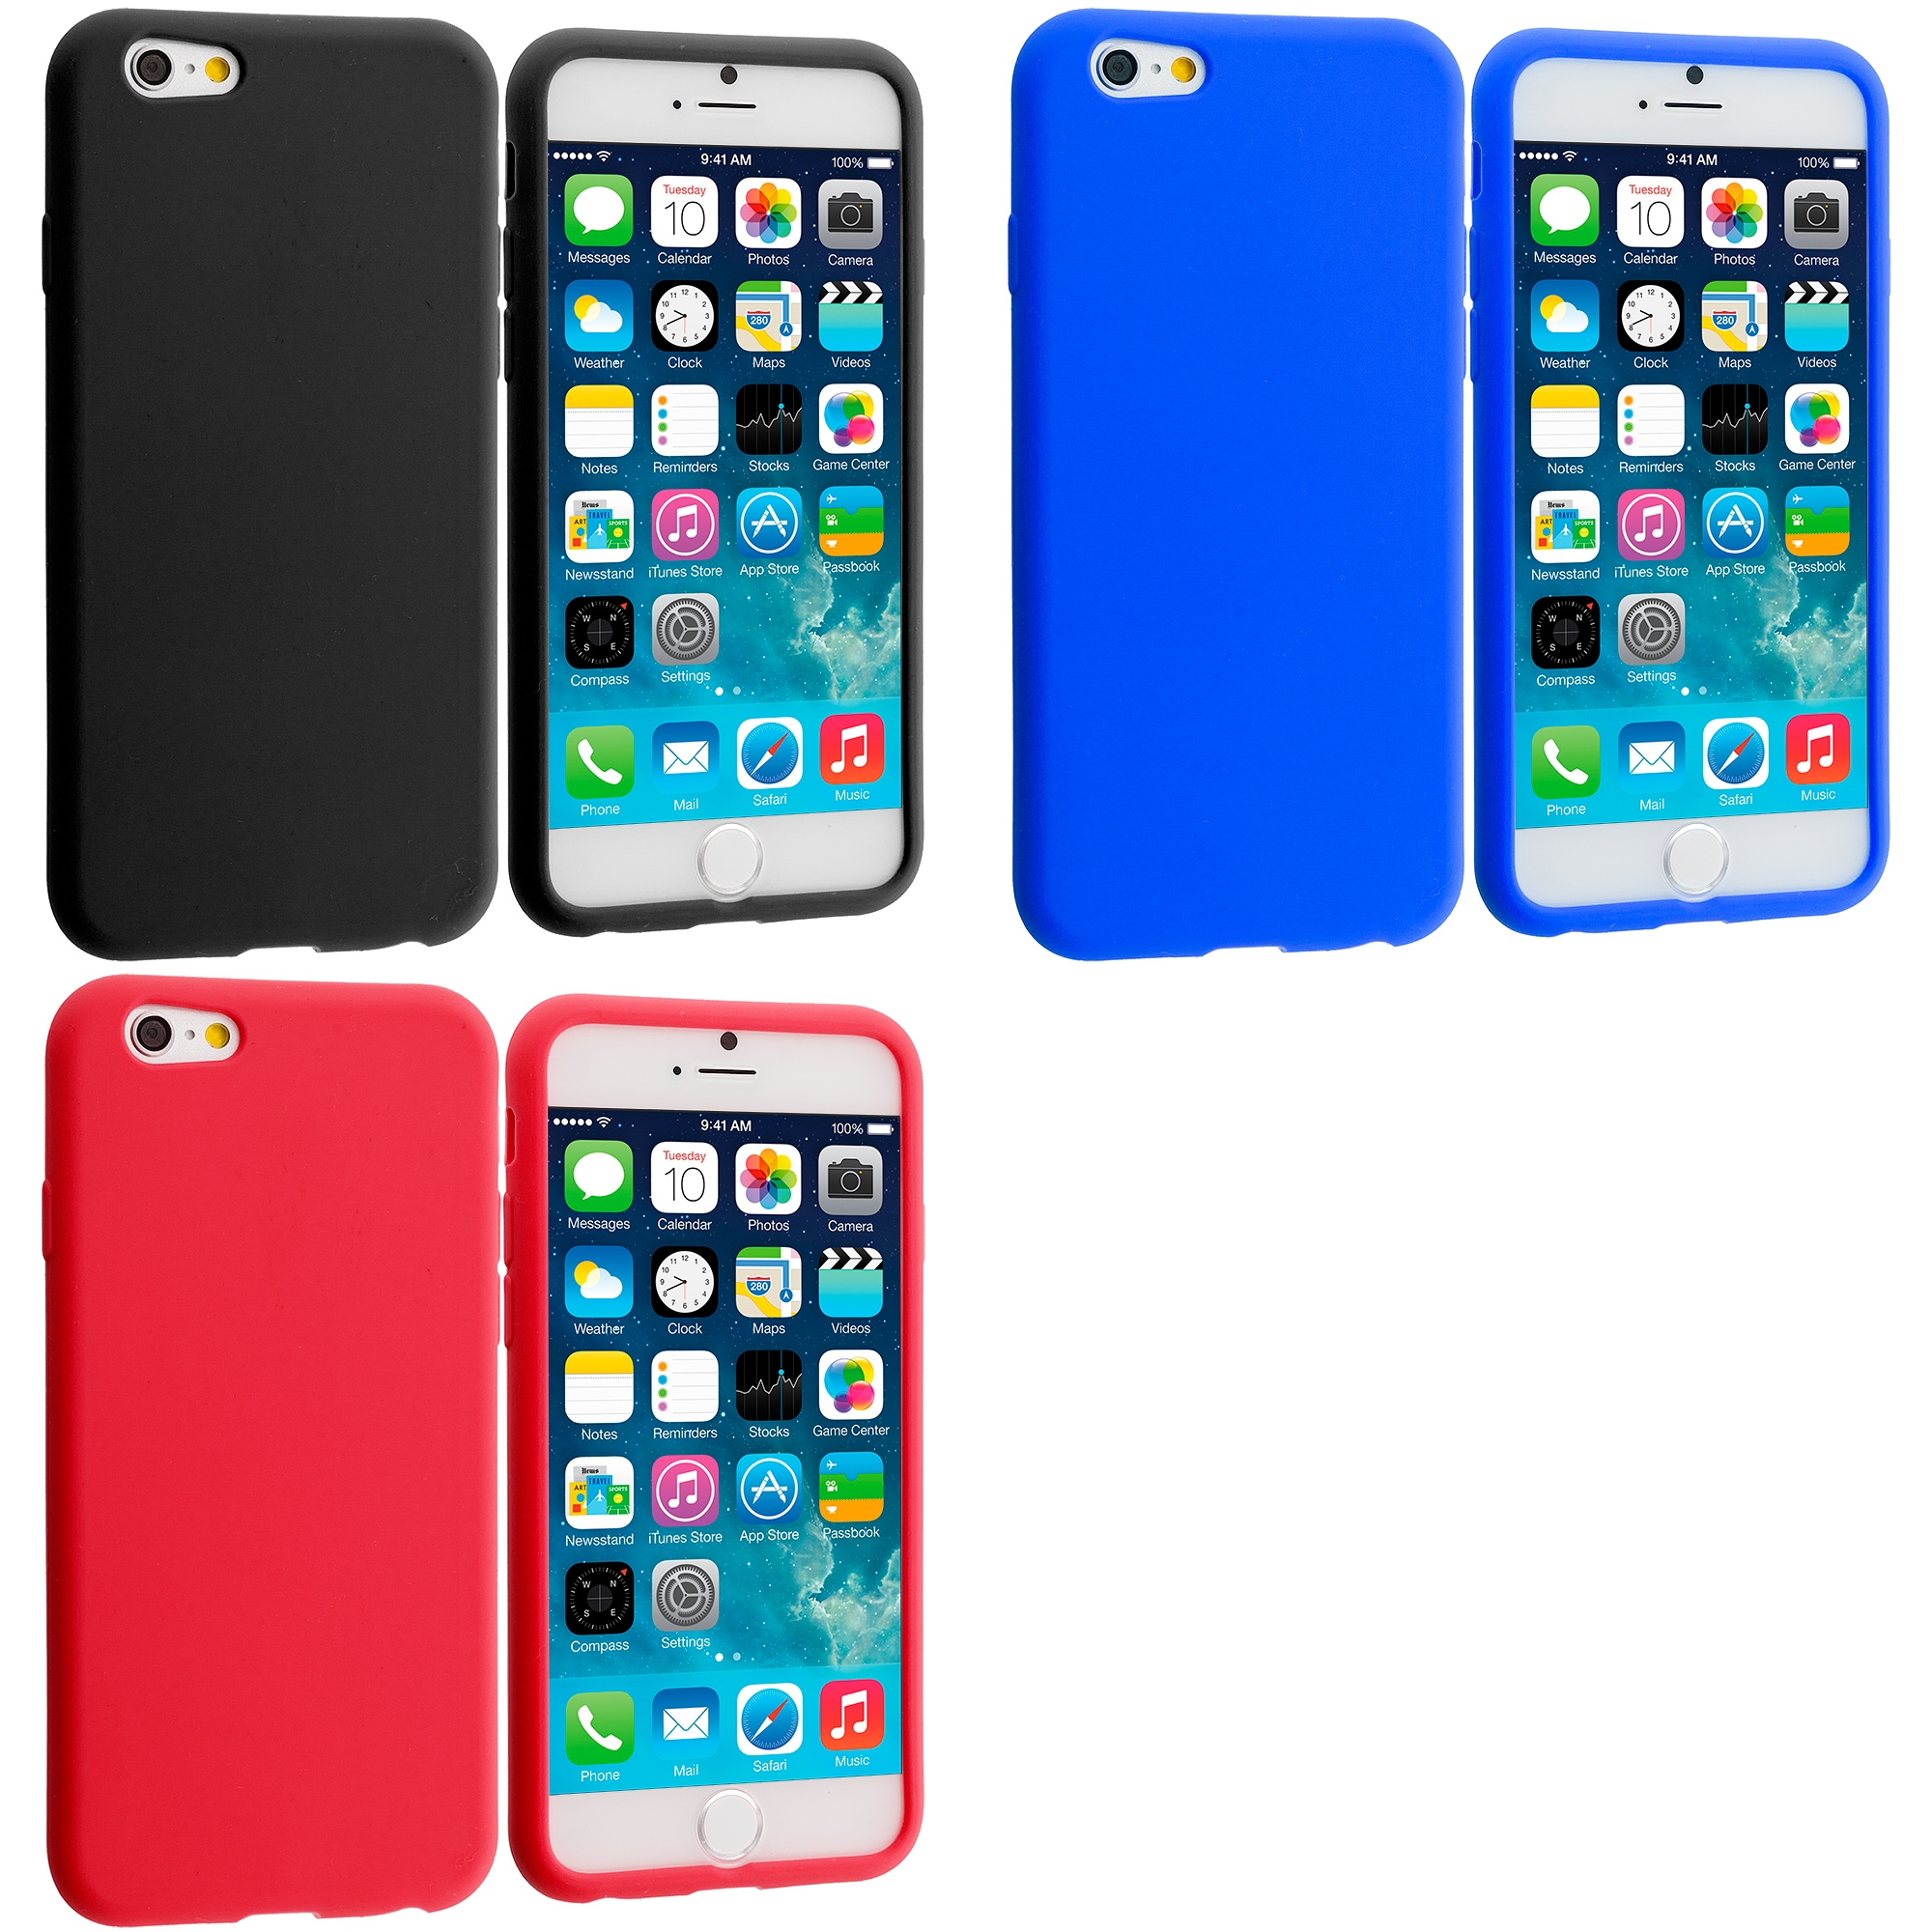 Apple iPhone 6 6S (4.7) 3 in 1 Combo Bundle Pack - Silicone Soft Skin Case Cover